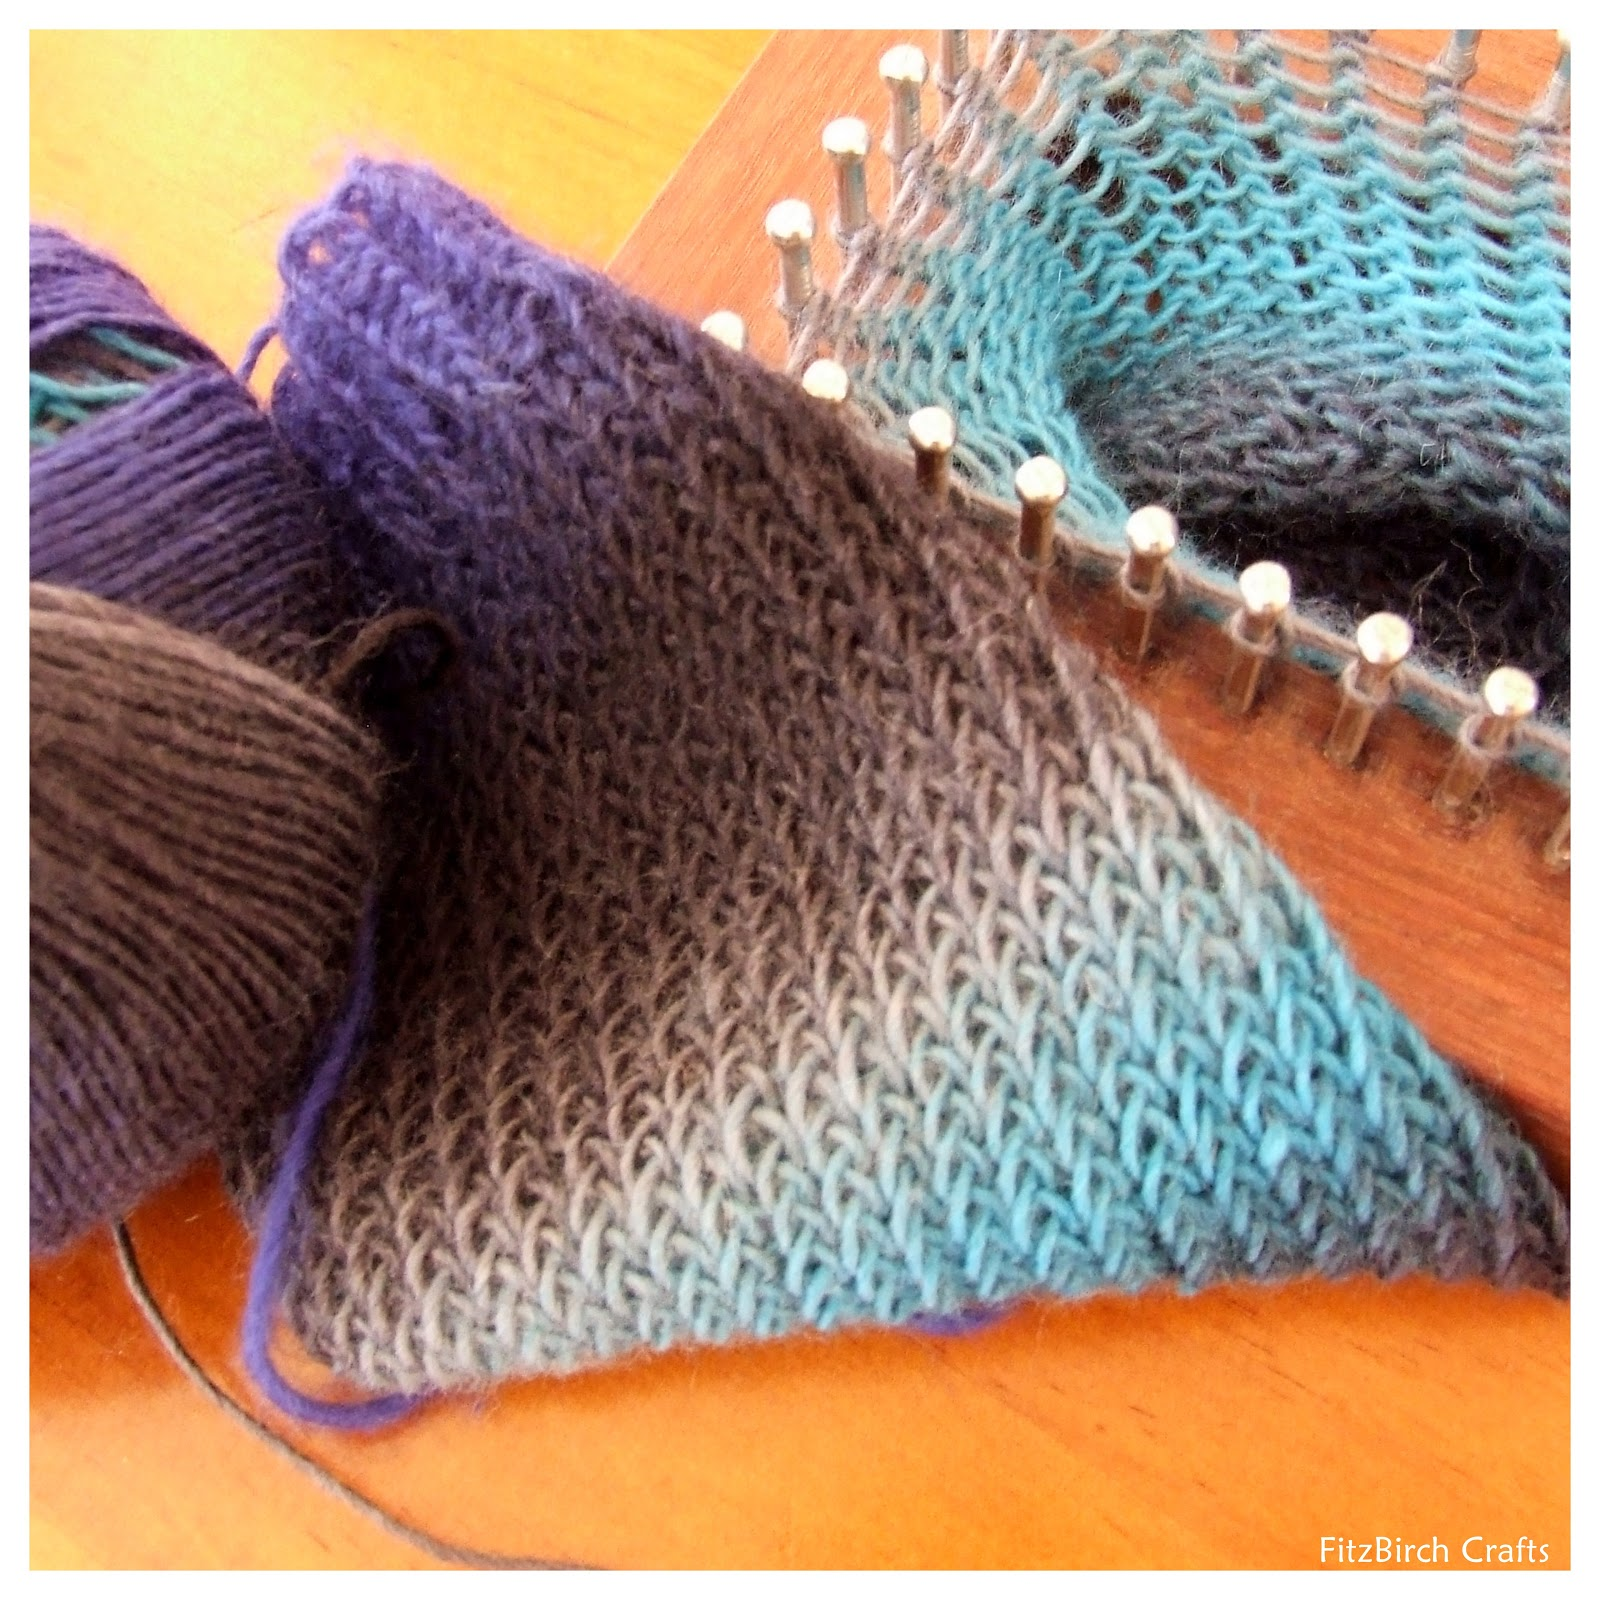 Knitting Socks On A Loom : Fitzbirch crafts loom knit socks